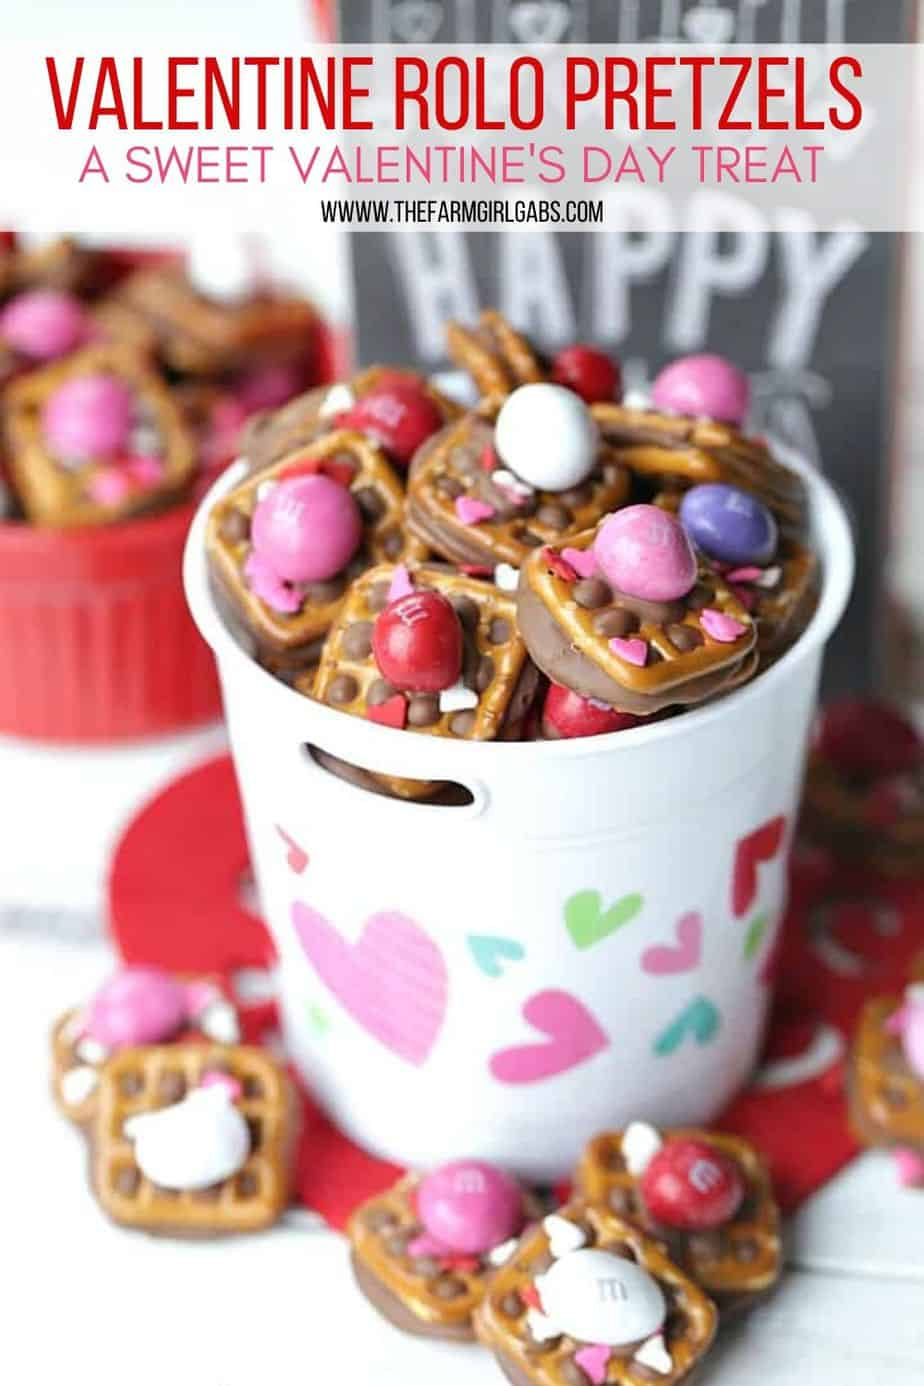 A little bit sweet, a little bit salty and oh so good! These Valentine ROLO Pretzel Sandwiches are a sweet treat for Valentine's Day.  This recipe is an easy Valentine treat to make for class parties, family and friends. They are a huge hit for Valentine's Day. You can change the M&M colors and make these a for Christmas too. They are a huge holiday hit. #rolo #rolopretzels #valentinesdaycandy #valentinesdaytreats #christmastreats #christmascandy